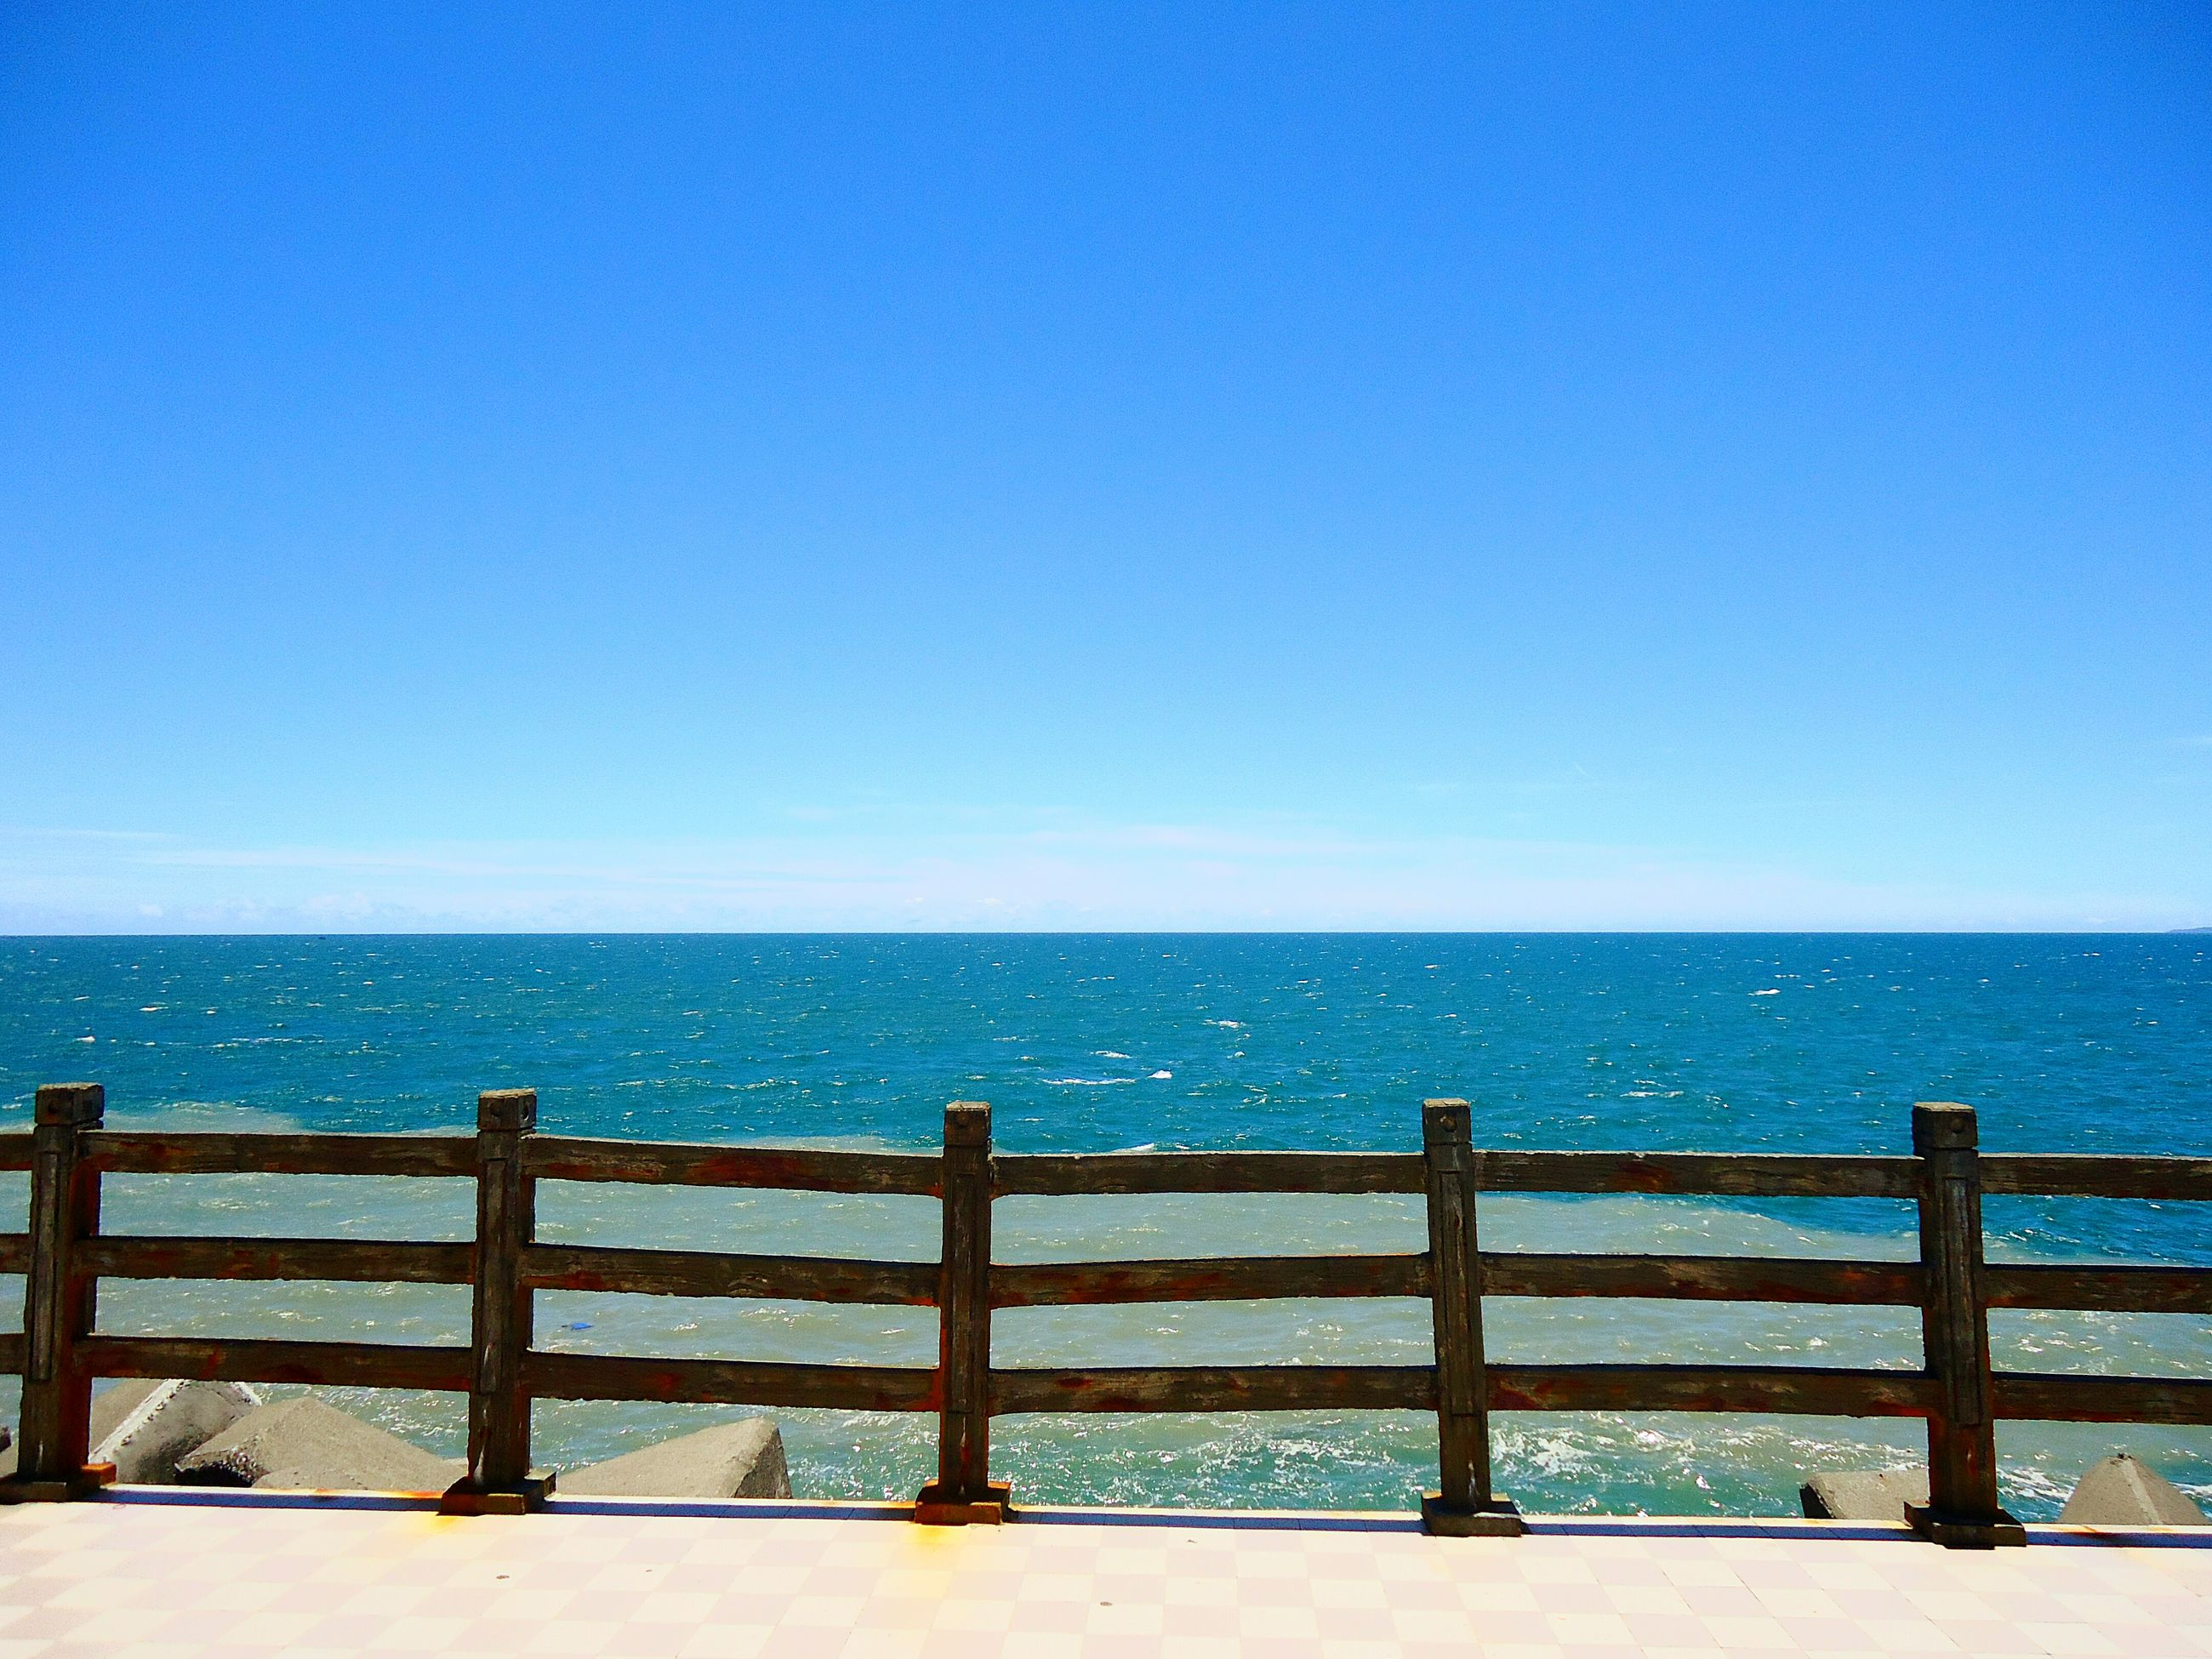 sea, horizon over water, water, blue, clear sky, tranquil scene, scenics, copy space, tranquility, beauty in nature, railing, beach, nature, idyllic, seascape, ocean, calm, outdoors, shore, remote